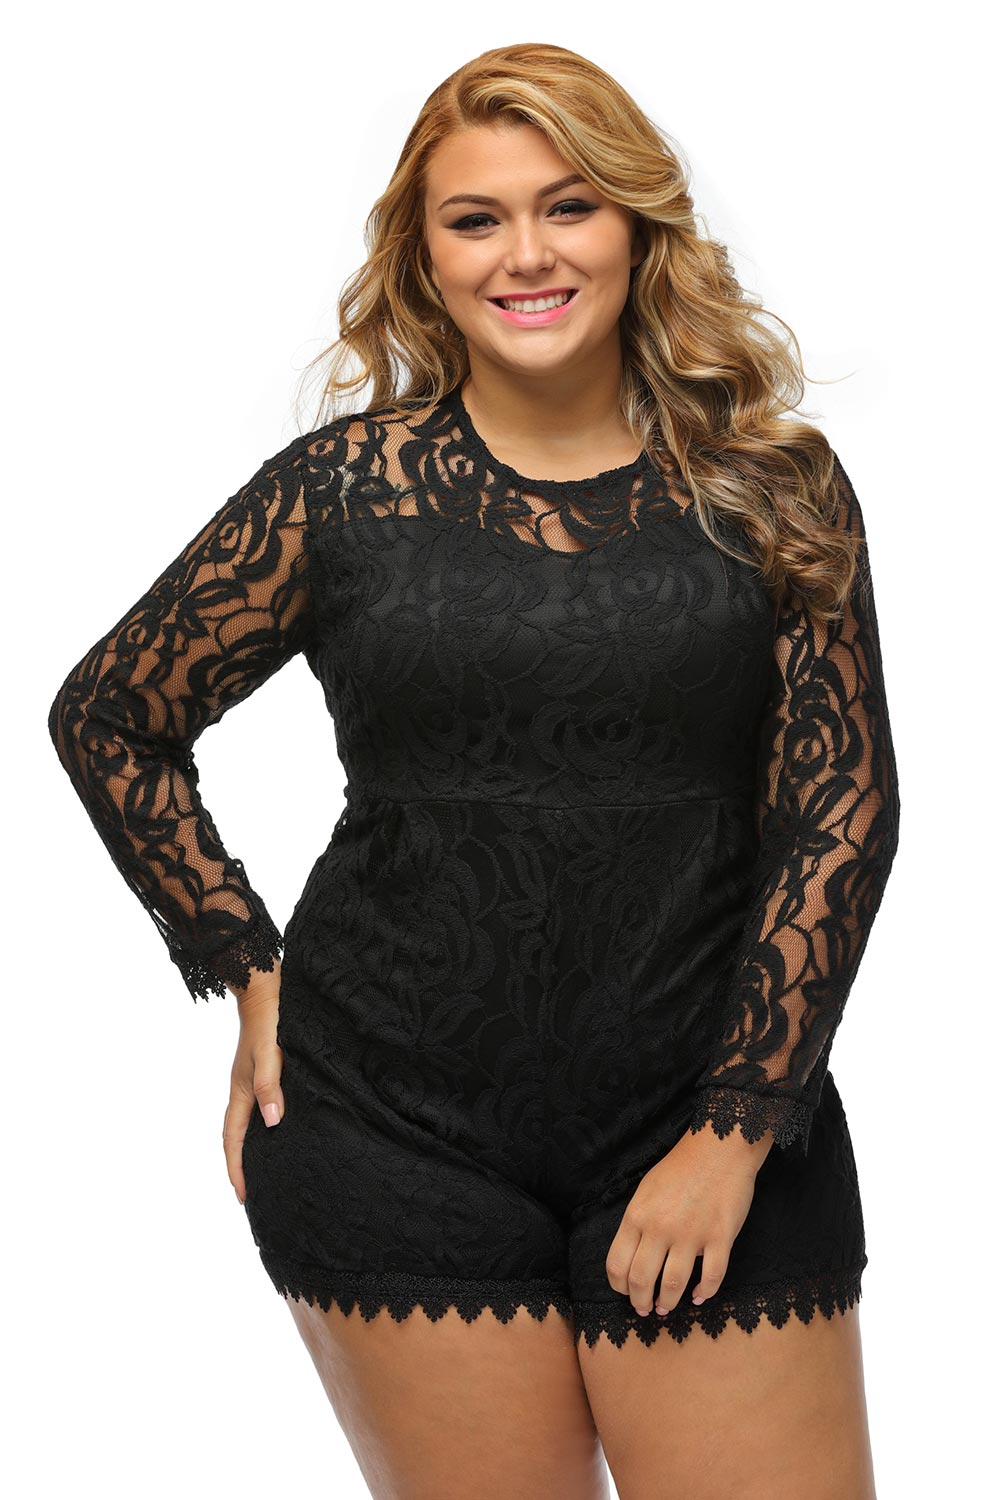 Black dress romper - Women Black Plus Size Long Sleeve Lace Romper